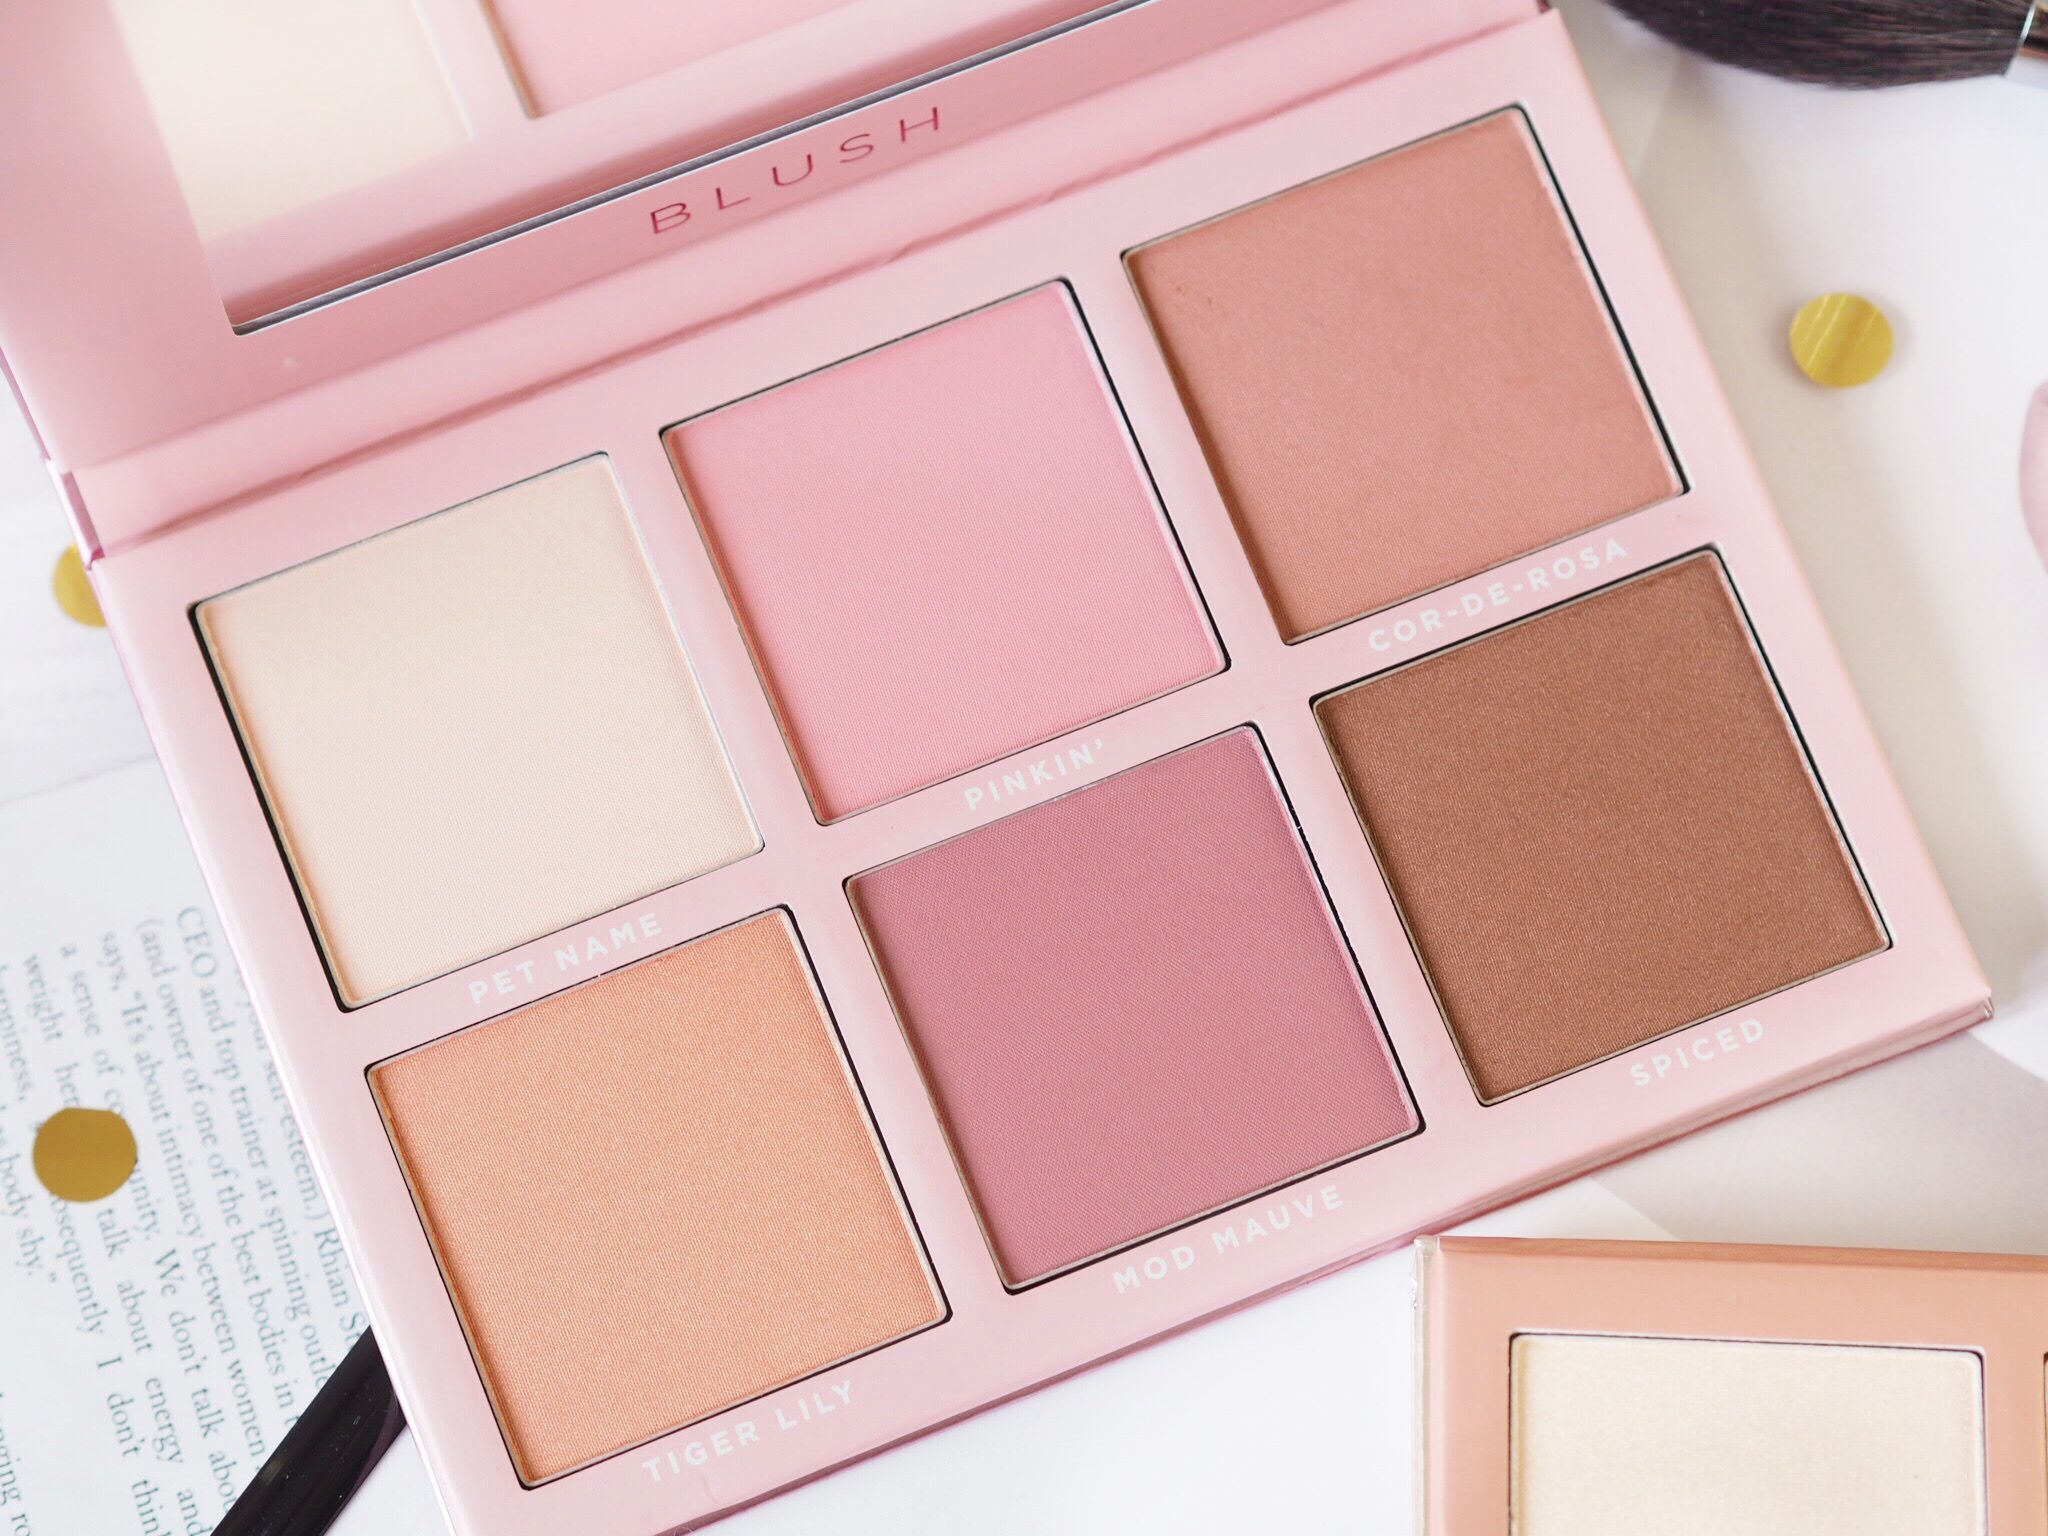 A Trio Of Sigma Newness Blush Eyeshadow Makeup Pink Eyeshadow